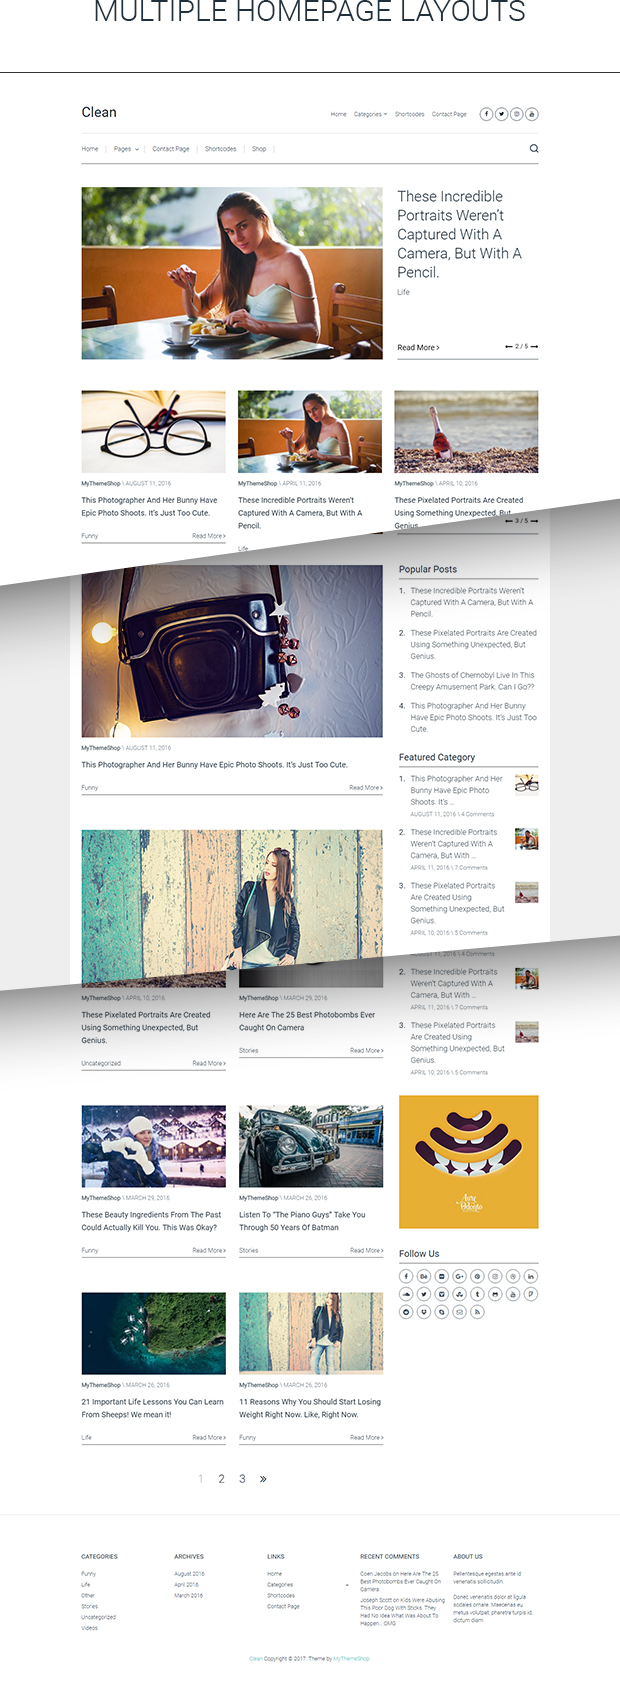 Clean is a new WordPress Theme from MyThemeShop